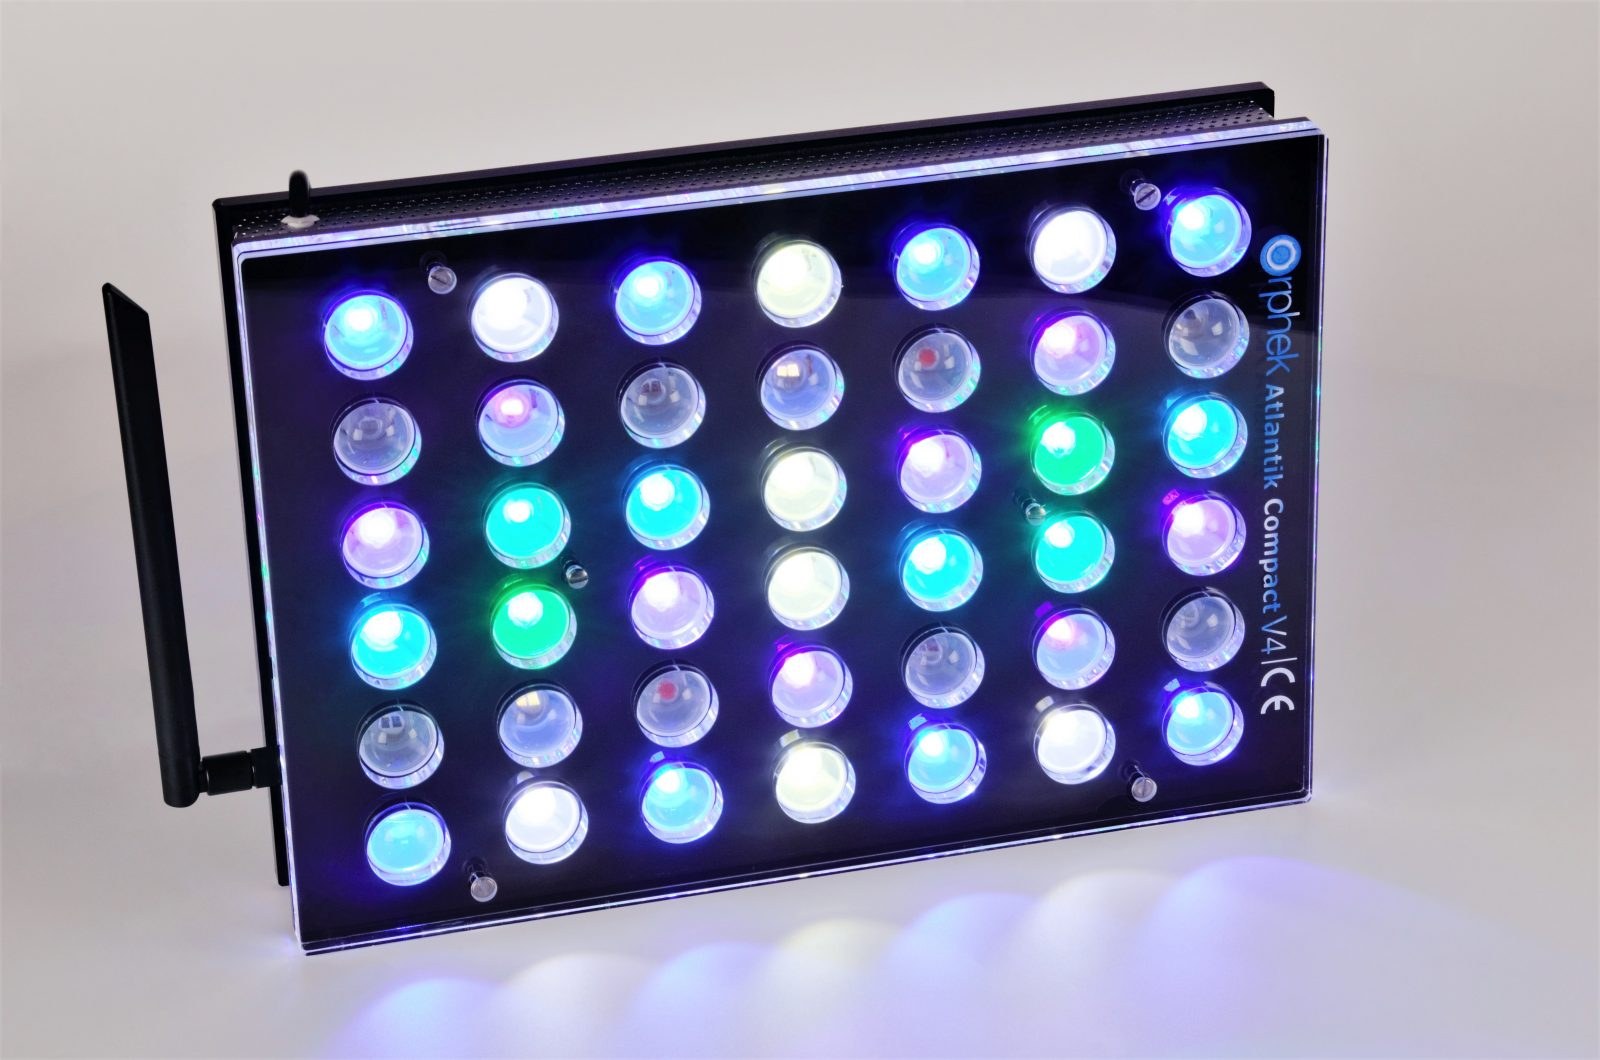 Orphek-Aquarium-Iluminación-LED-Atlantik -Compact-V4-light-on-channel 1 + 2 + 3